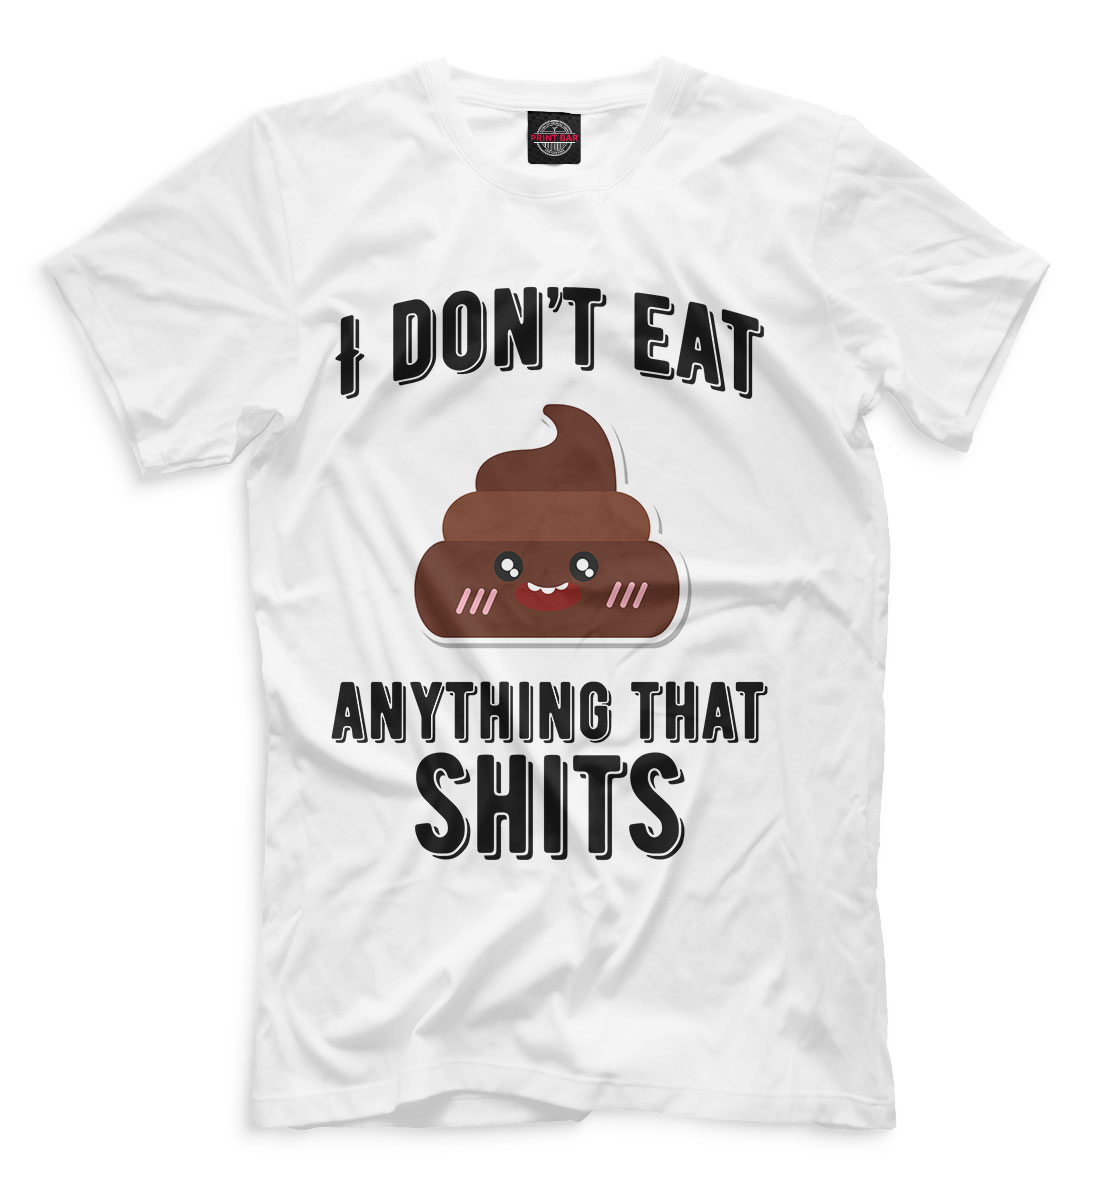 I Dont Eat Anything That Shits